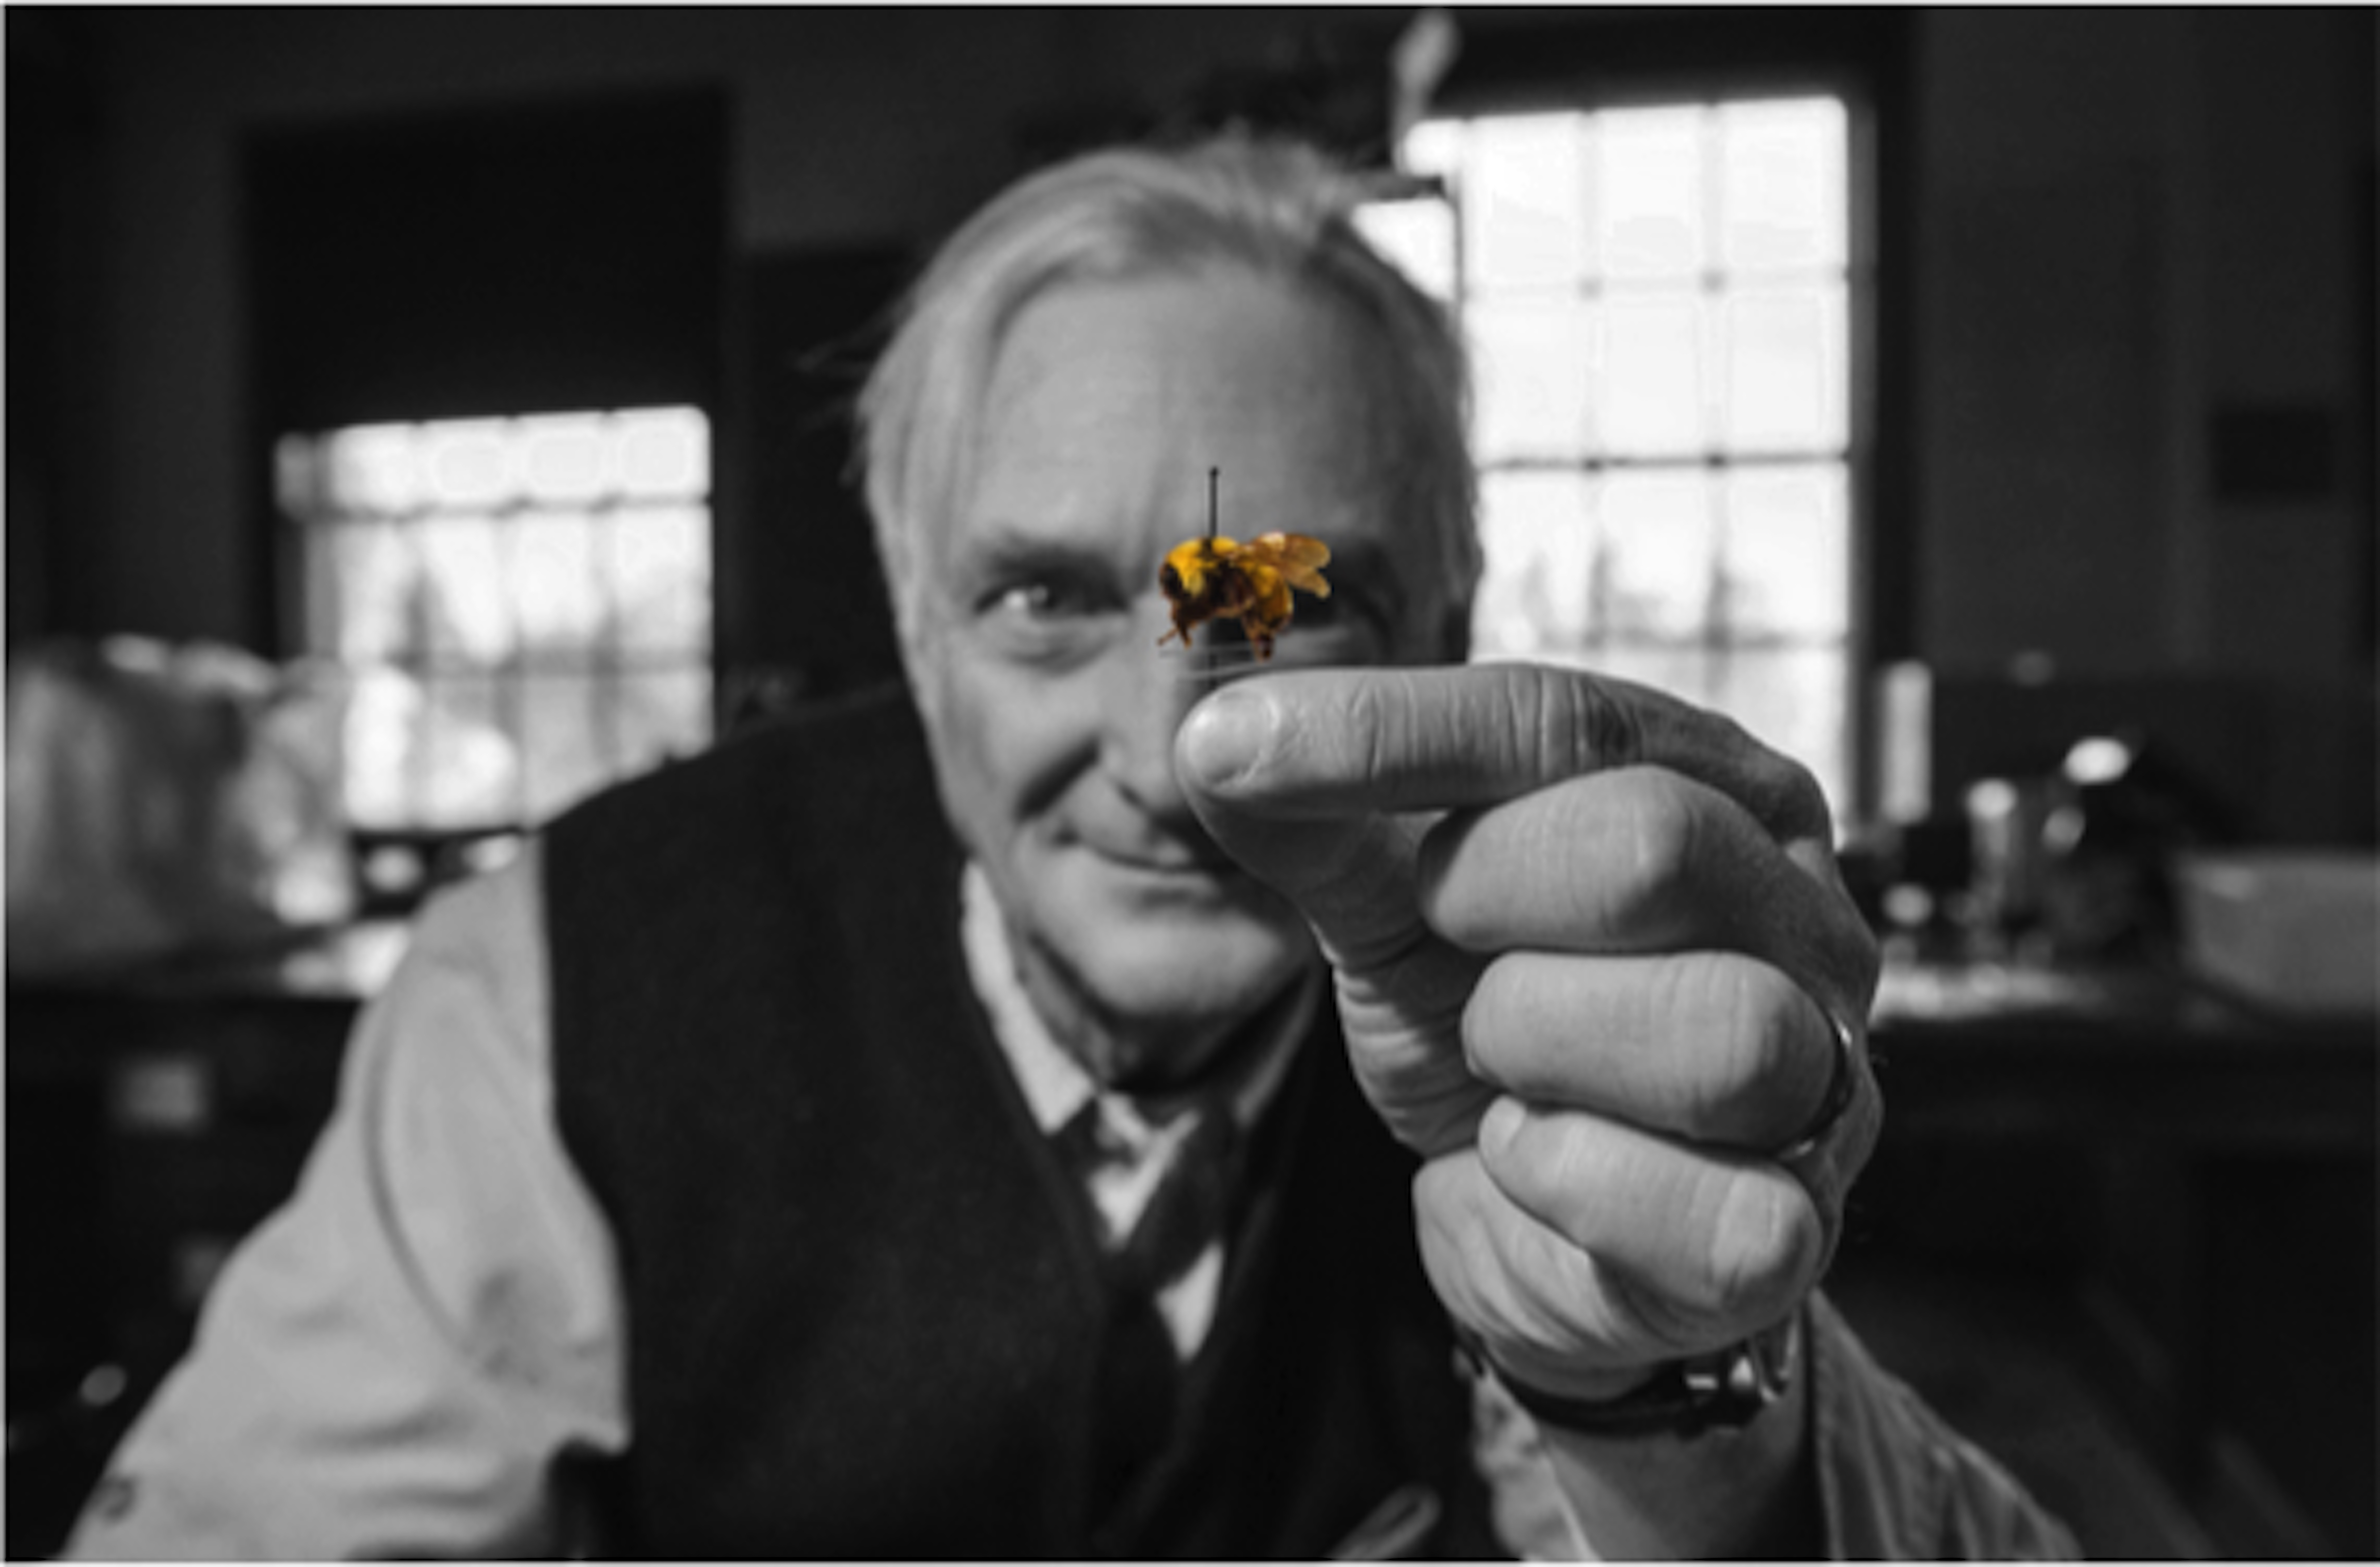 An artistic shot that is in black and white except for the bee, shows a man holding a small bee specimen, which is on a pin.